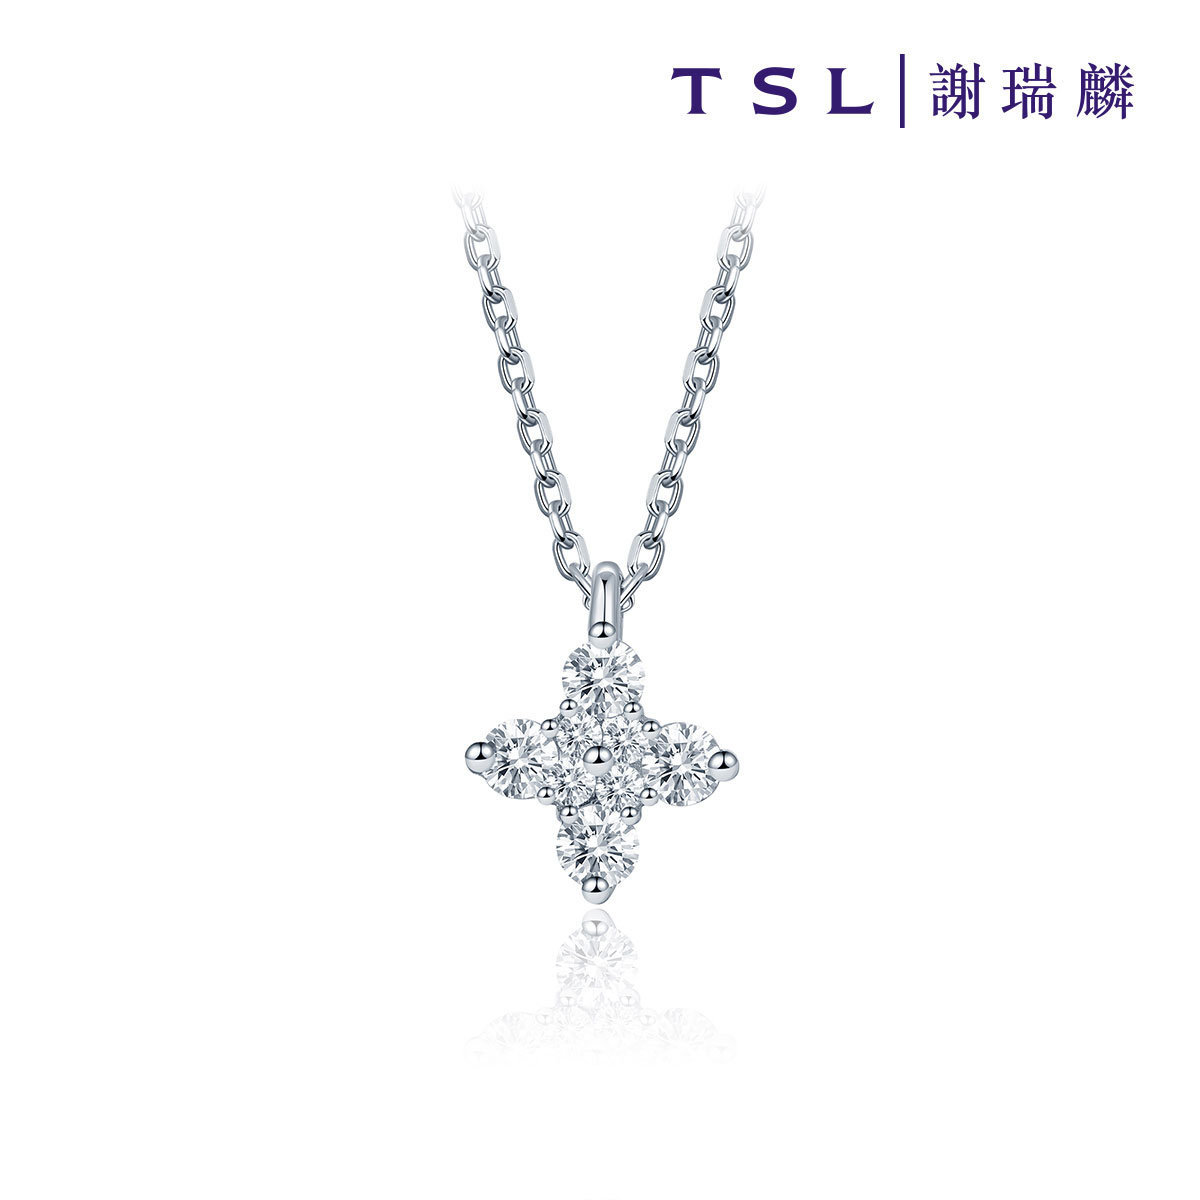 18K White Gold With Diamond Pendant